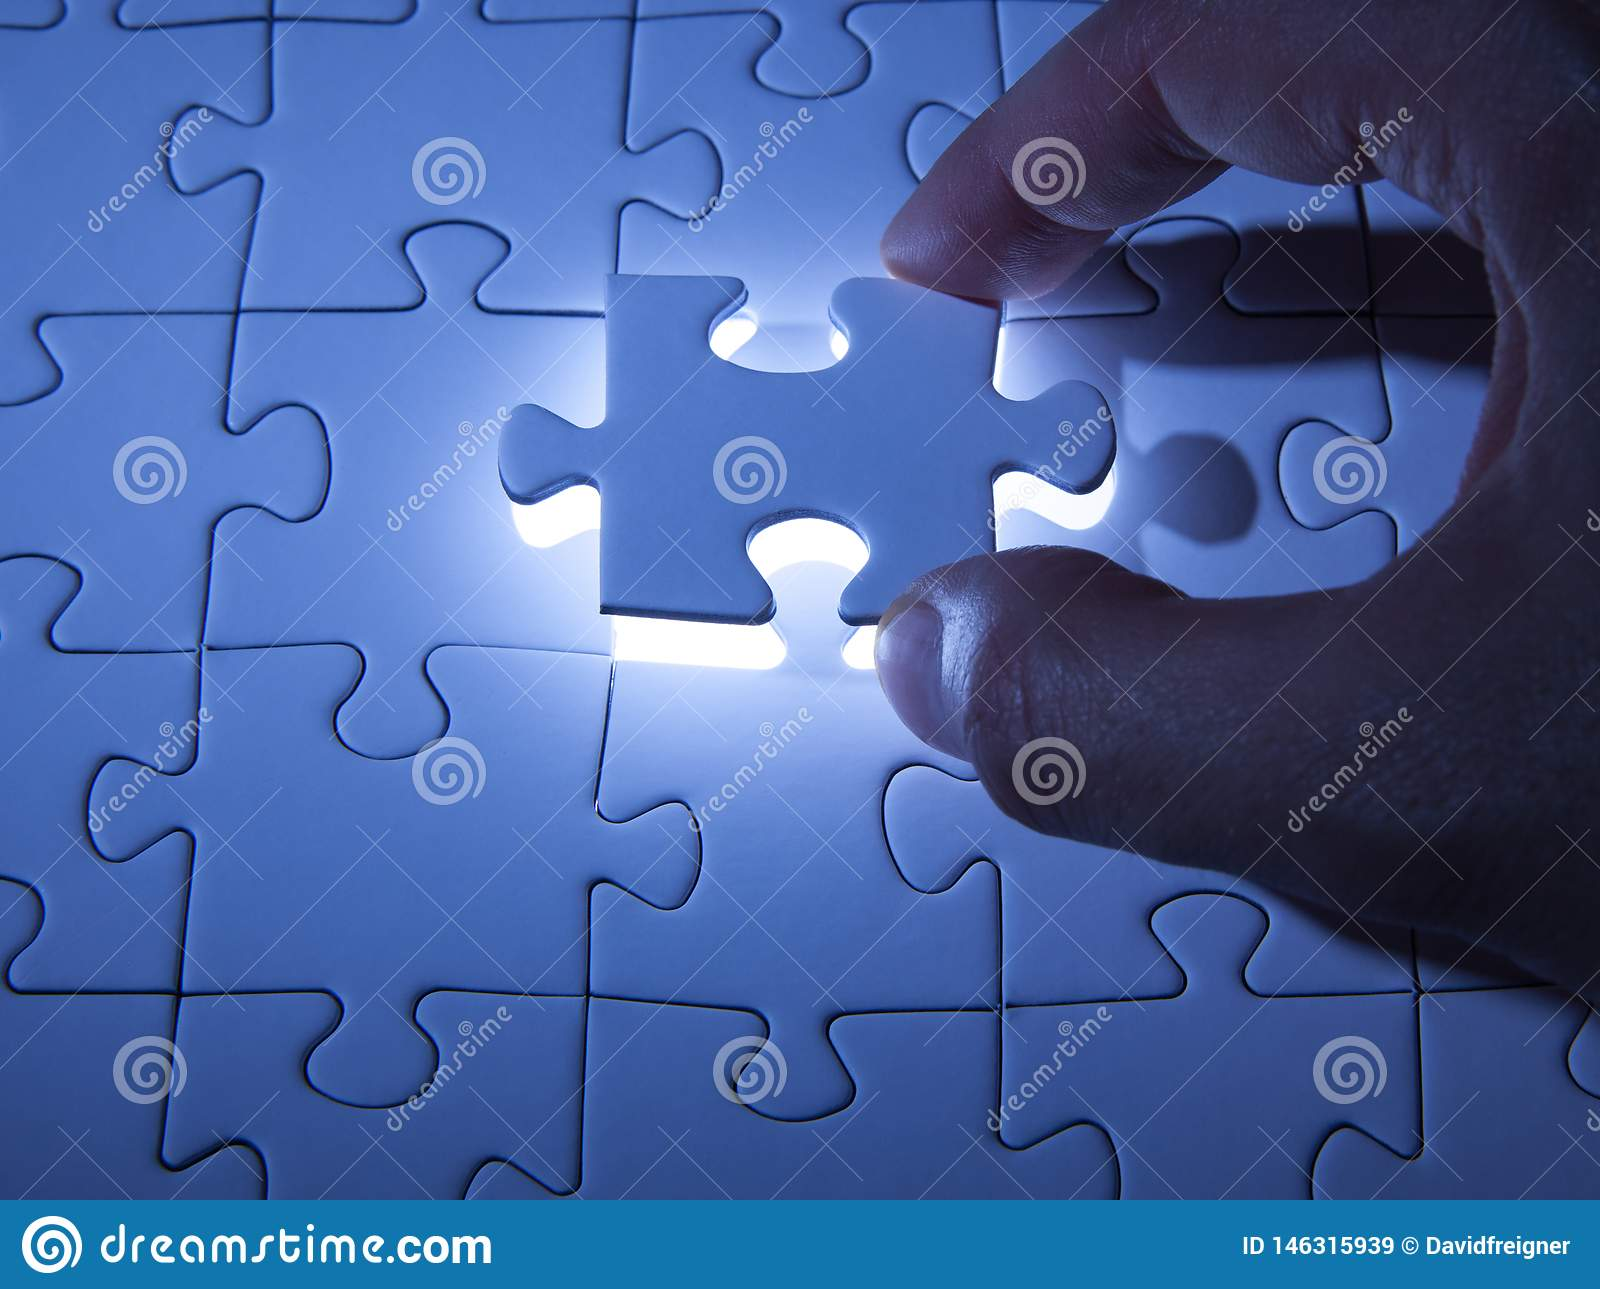 Blue Jigsaw Puzzle. Business Solutions, Solving Problems ...